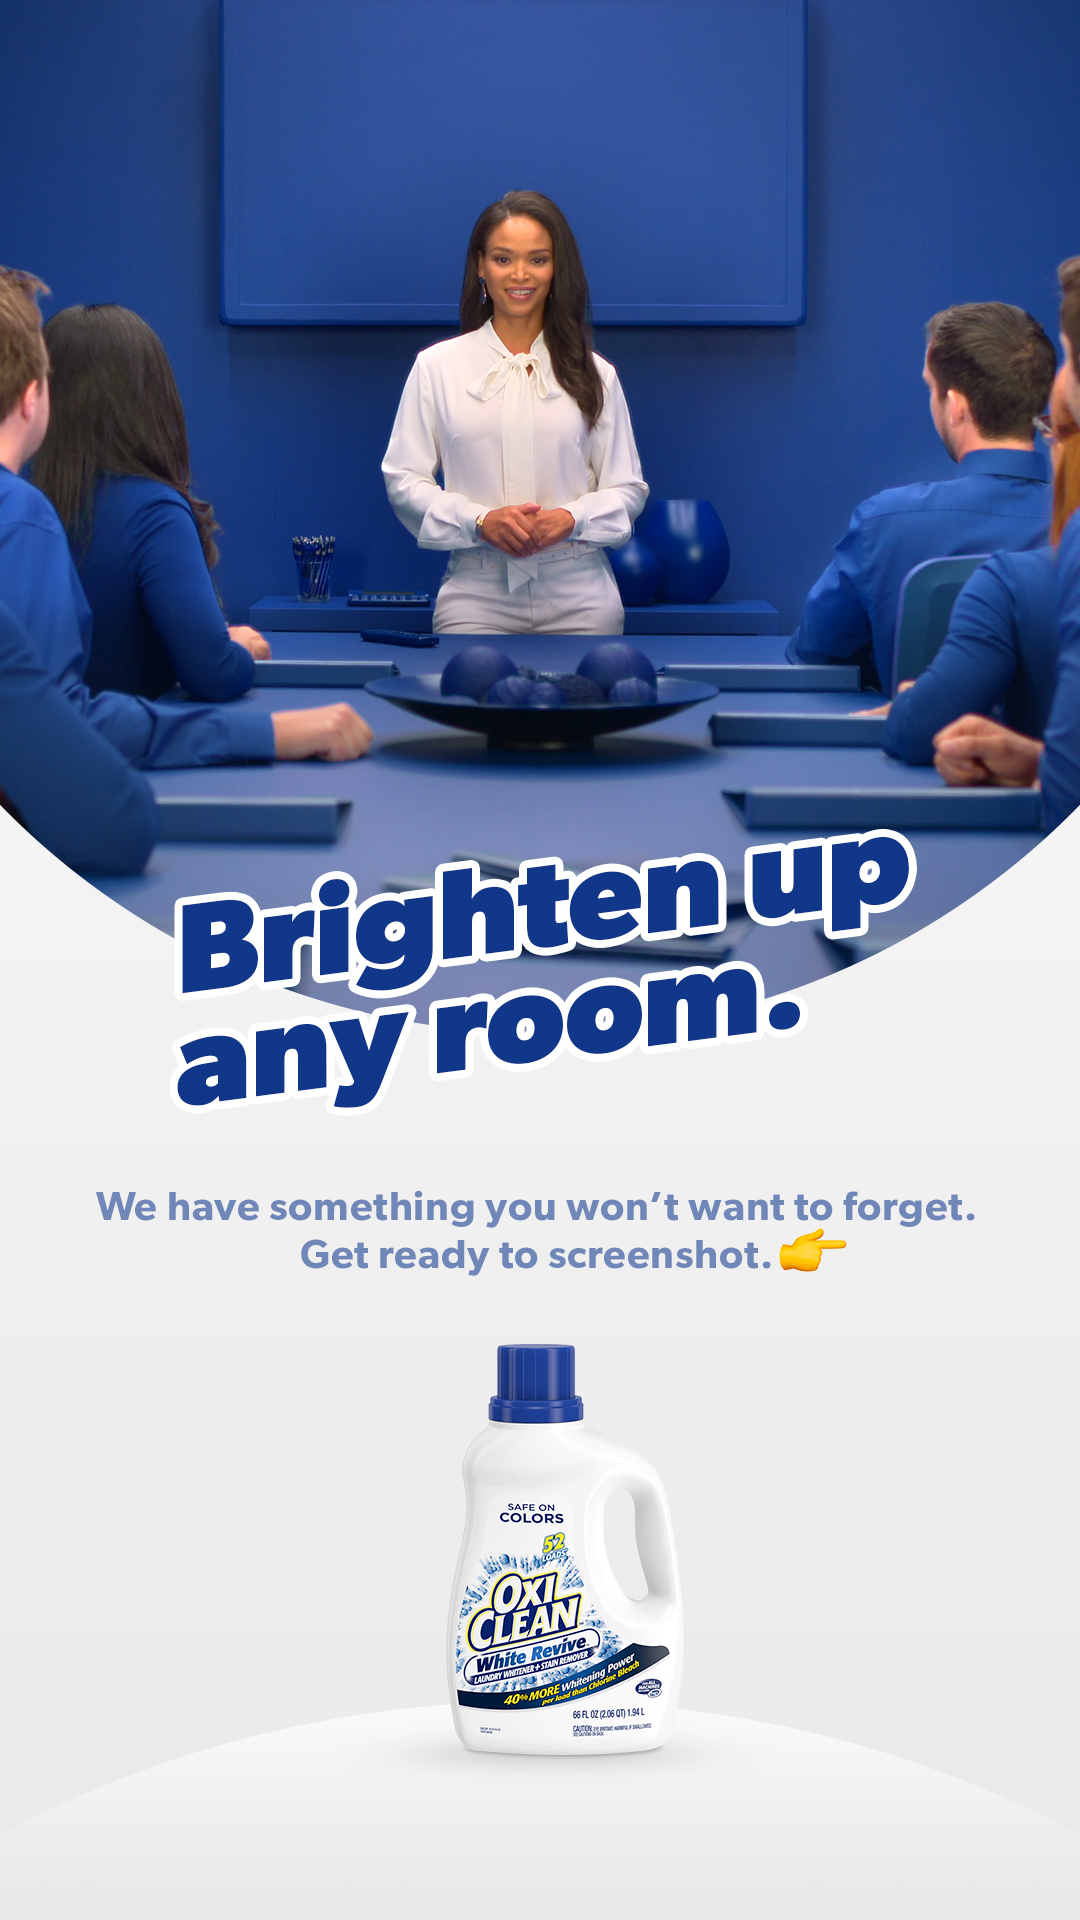 OxiClean_WhiteRevive_BringItOn_Social_InstaStory_Stainfographic_Boardroom_F1.jpg